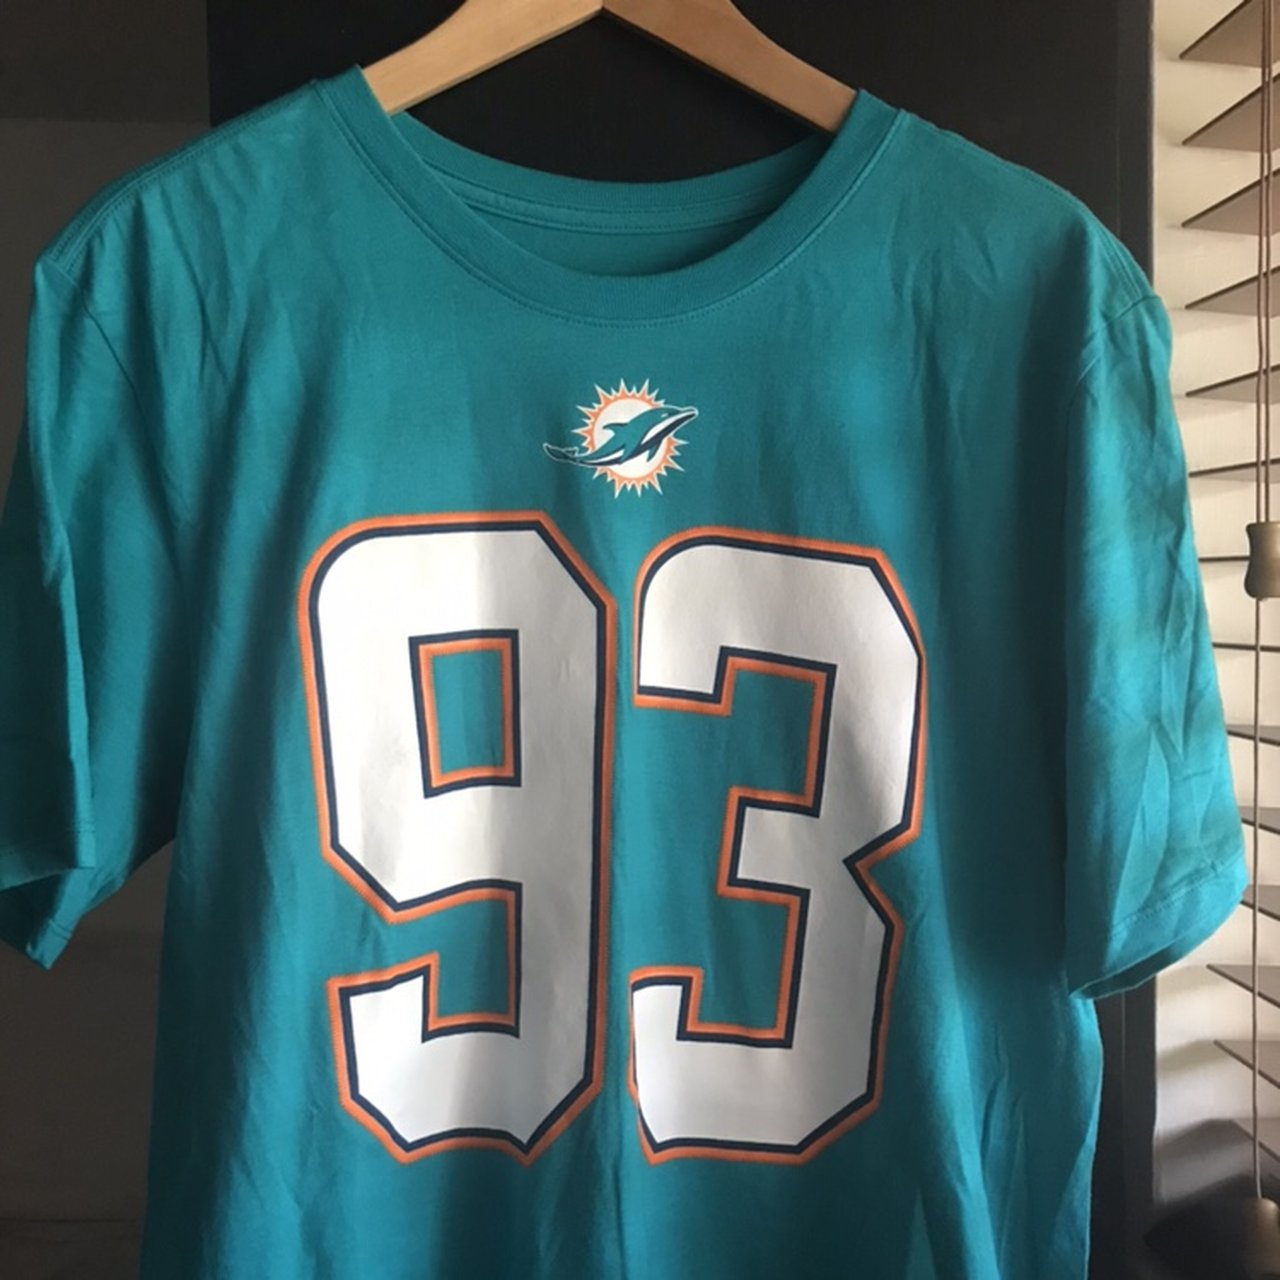 Nike NFL Dolphins Suh Jersey Shirt -Men s Size L -Very good - Depop ef660fed9